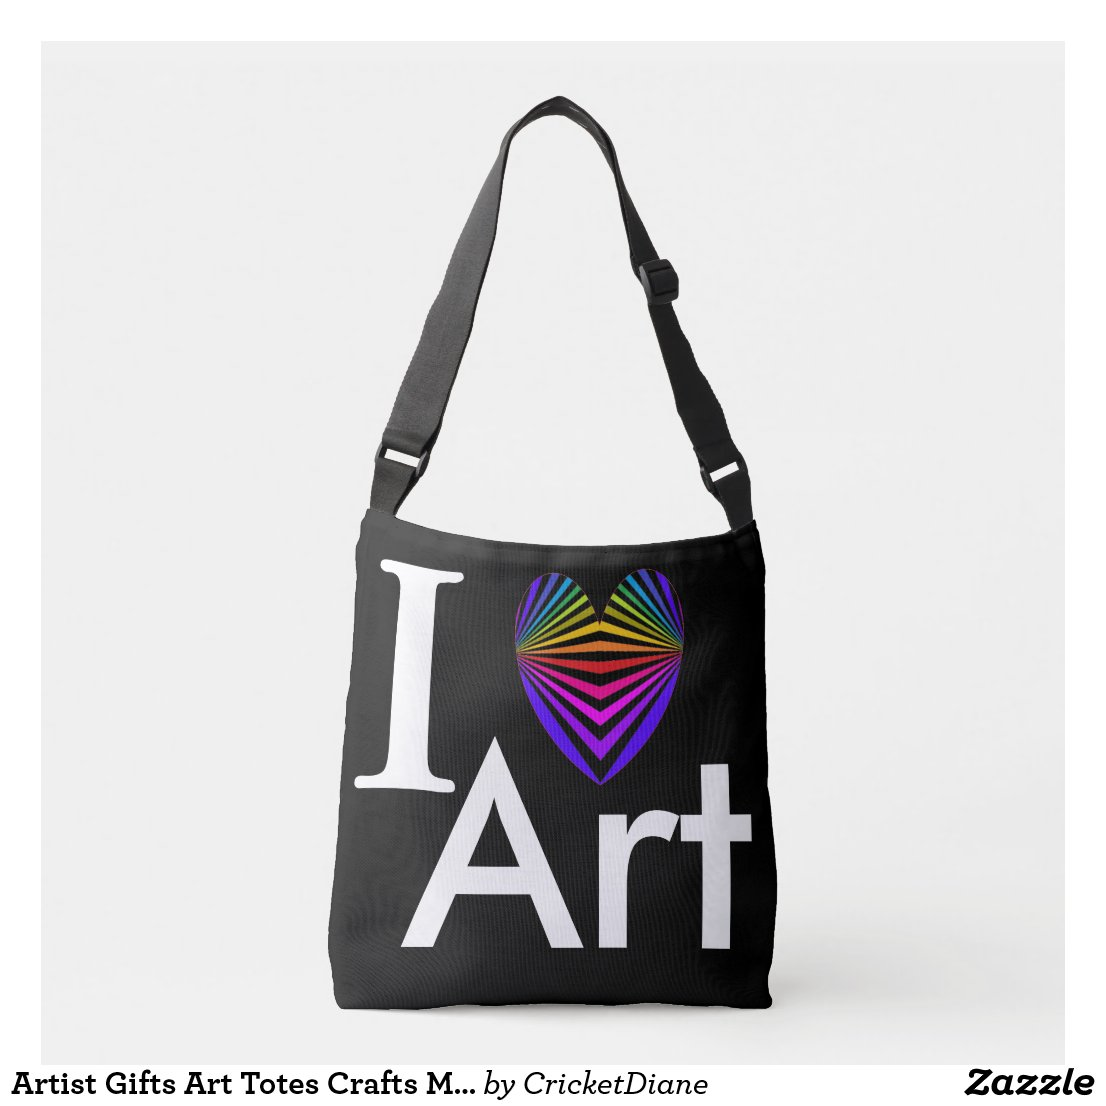 Artist Gifts Art Totes Crafts Makers Crafters Bags